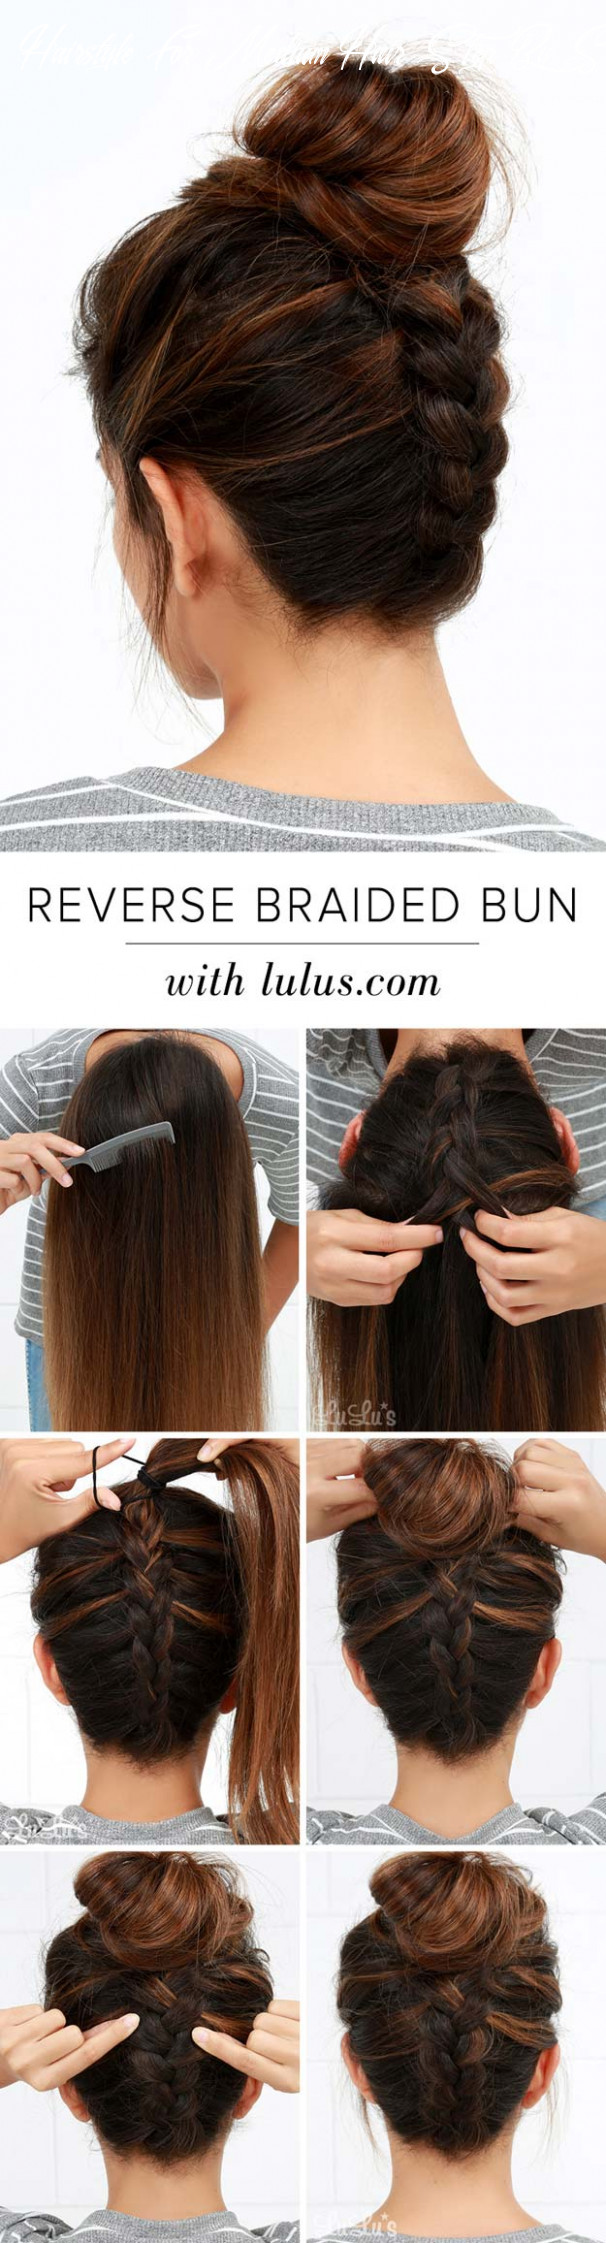 9 diy cool easy hairstyles that real people can actually do at home! hairstyle for medium hair step by step